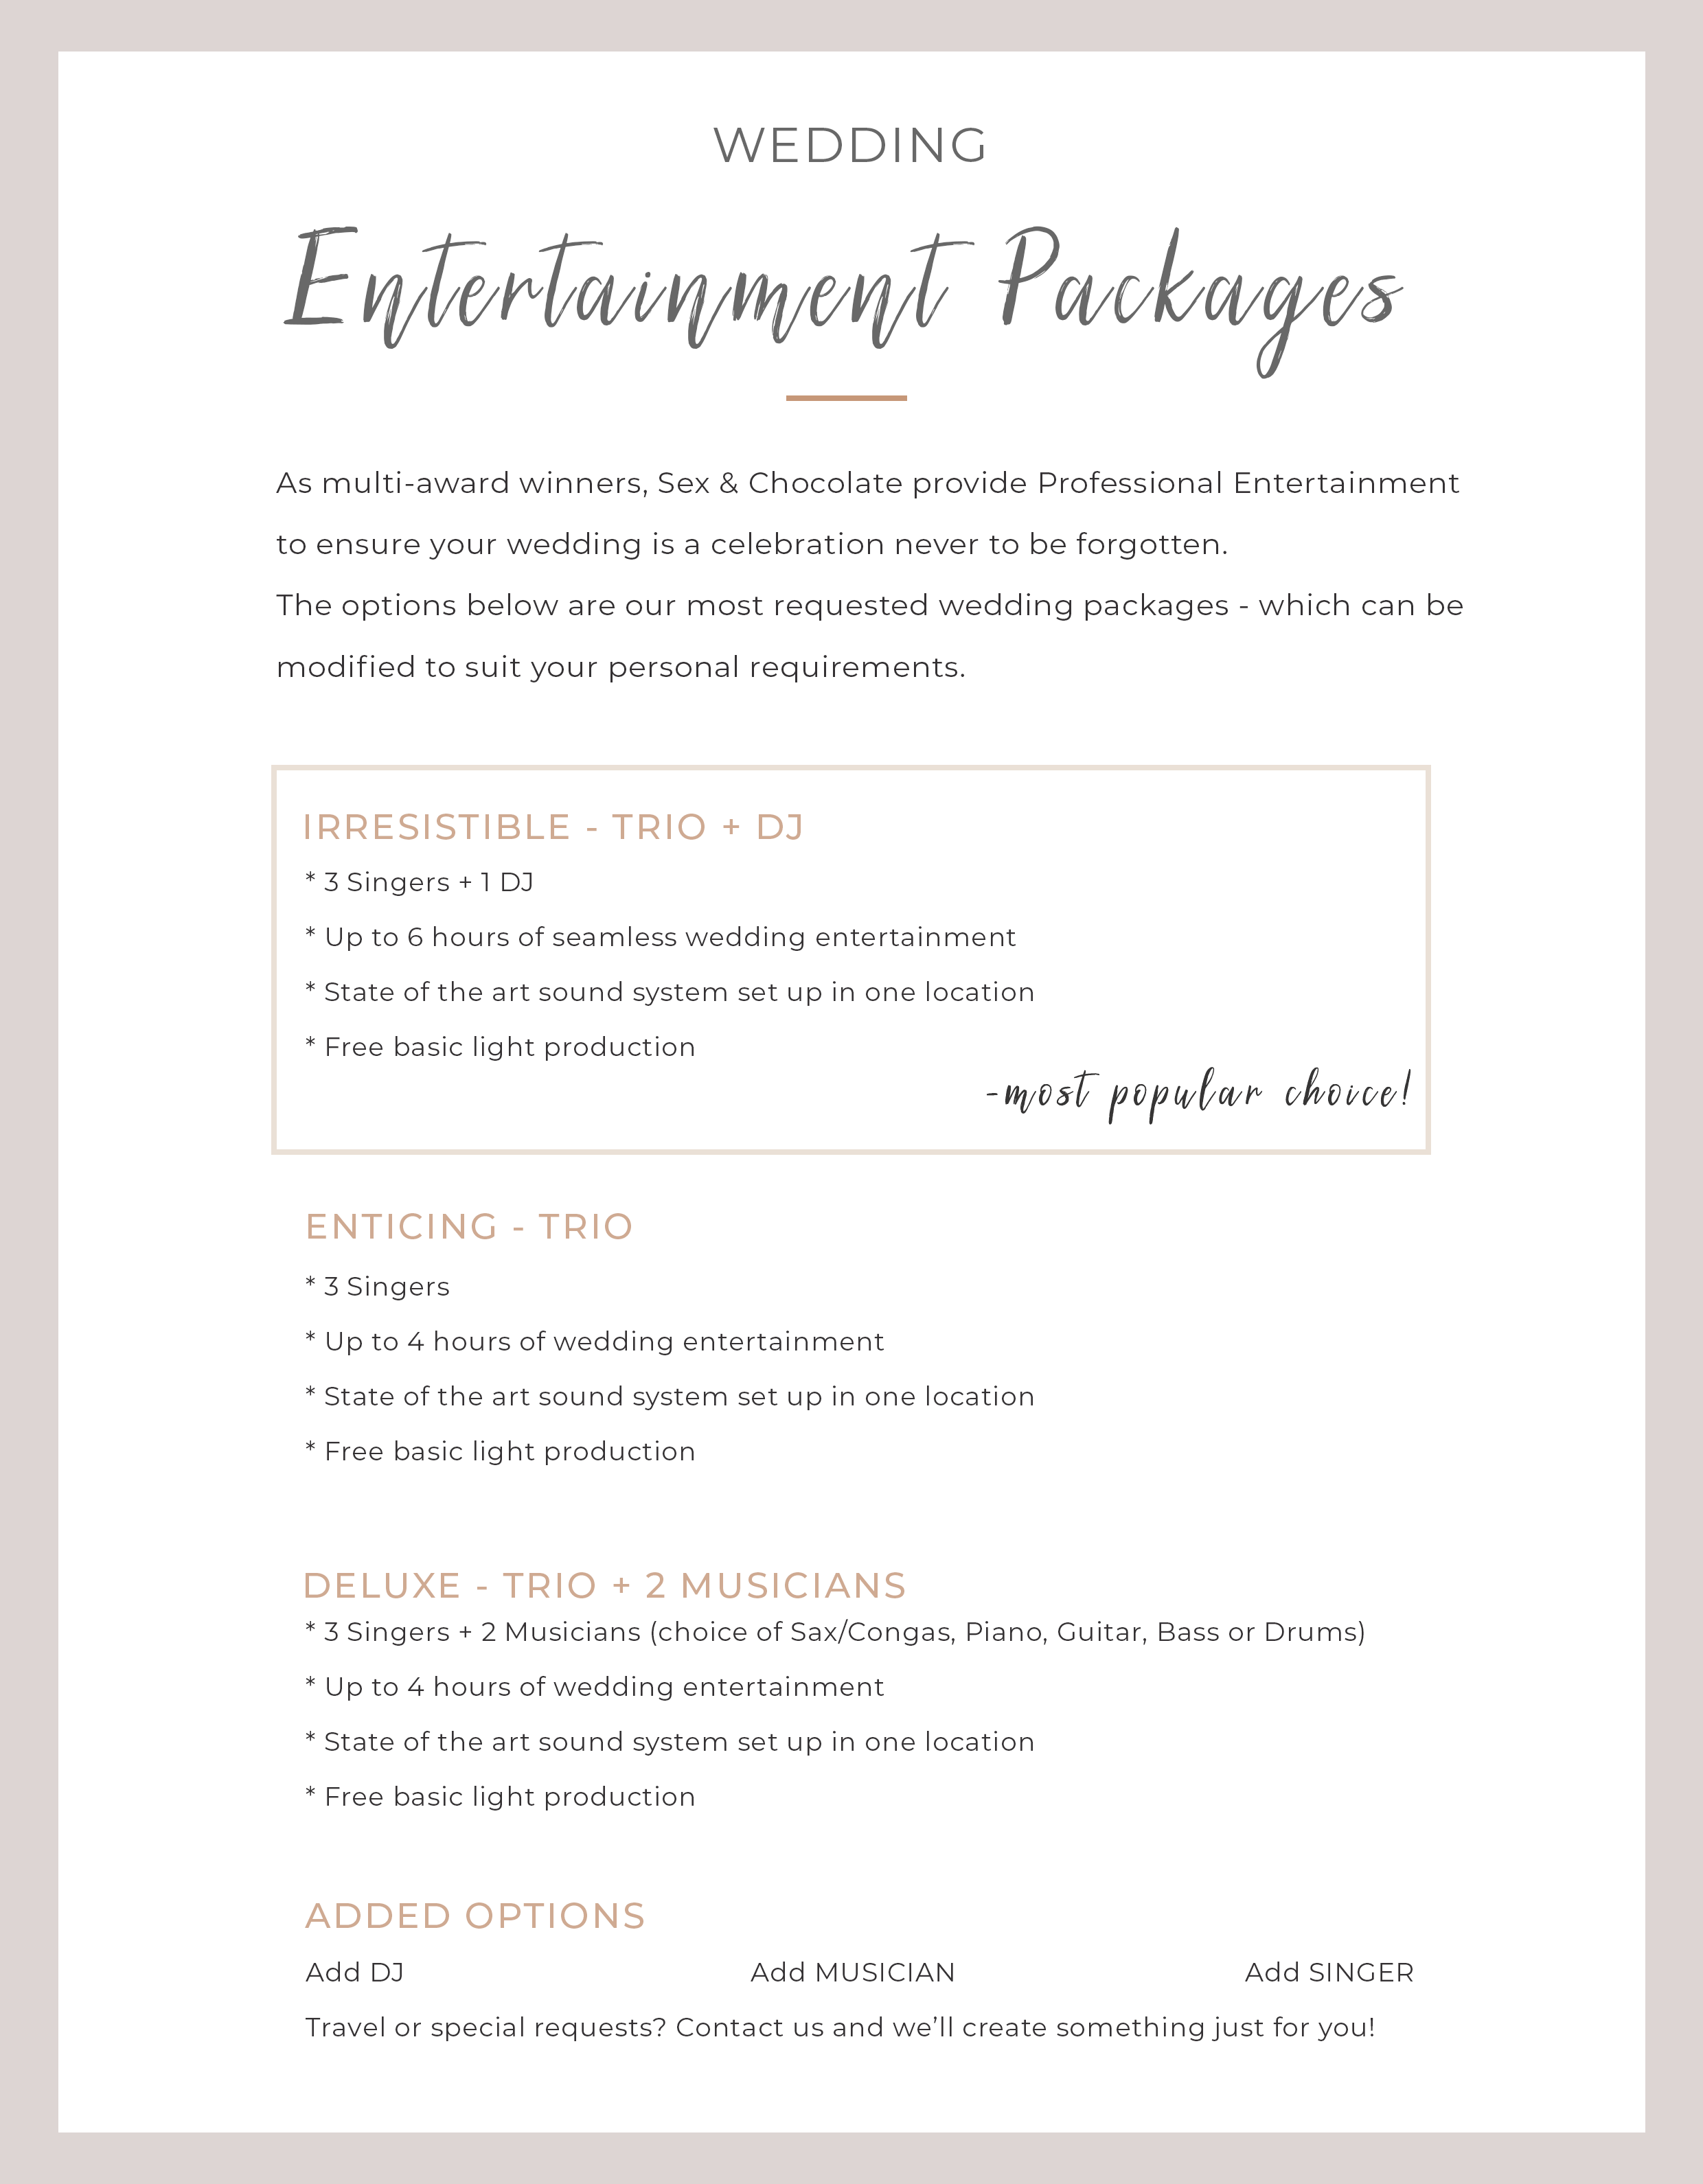 WEBSITE packages - Sex and Chocolate Wedding Entertainment Brochure medium bold